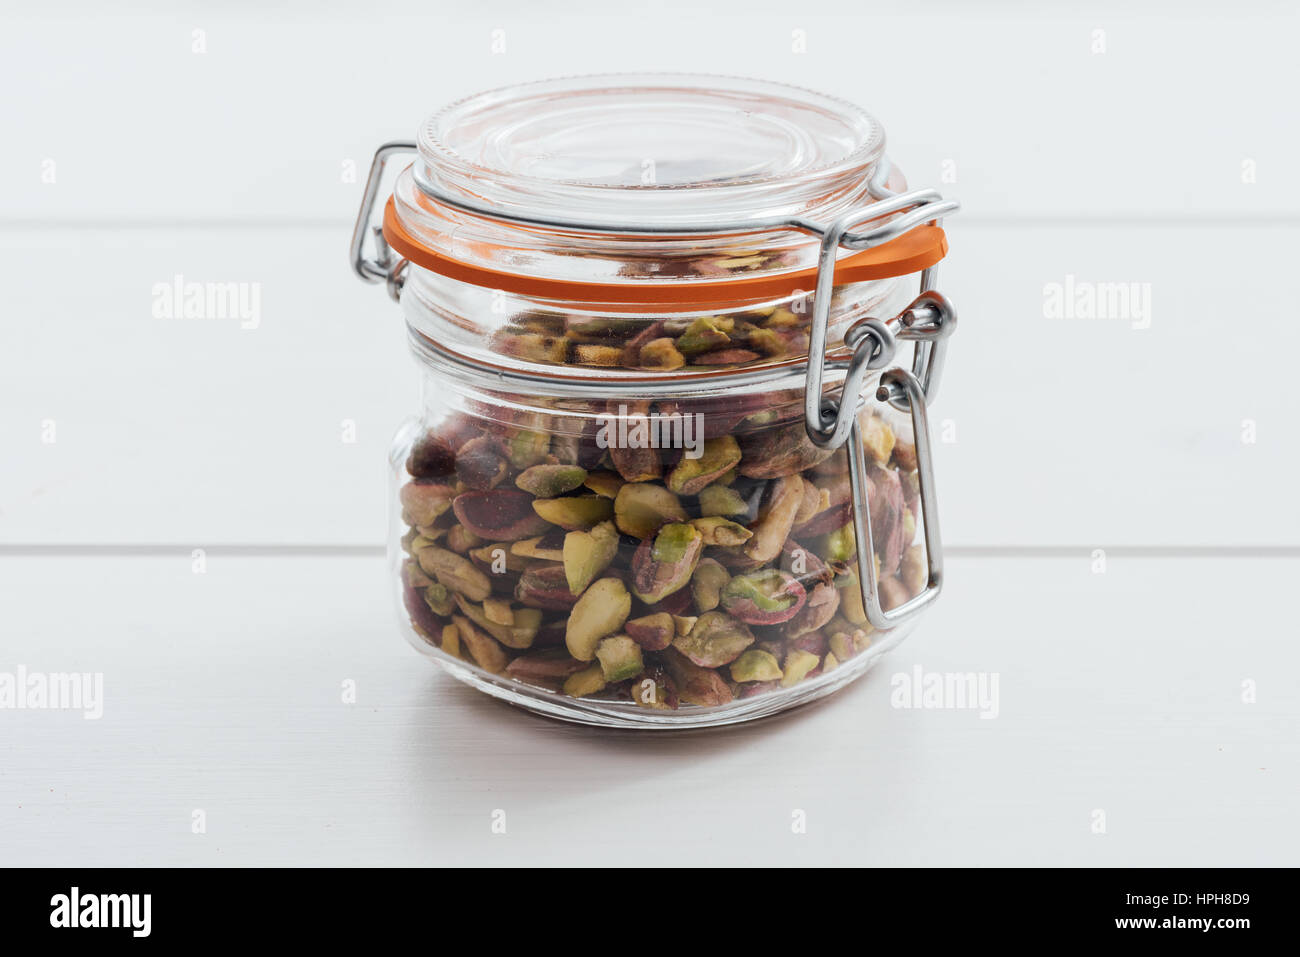 Roasted salted pistachios in a glass jar with lid - Stock Image